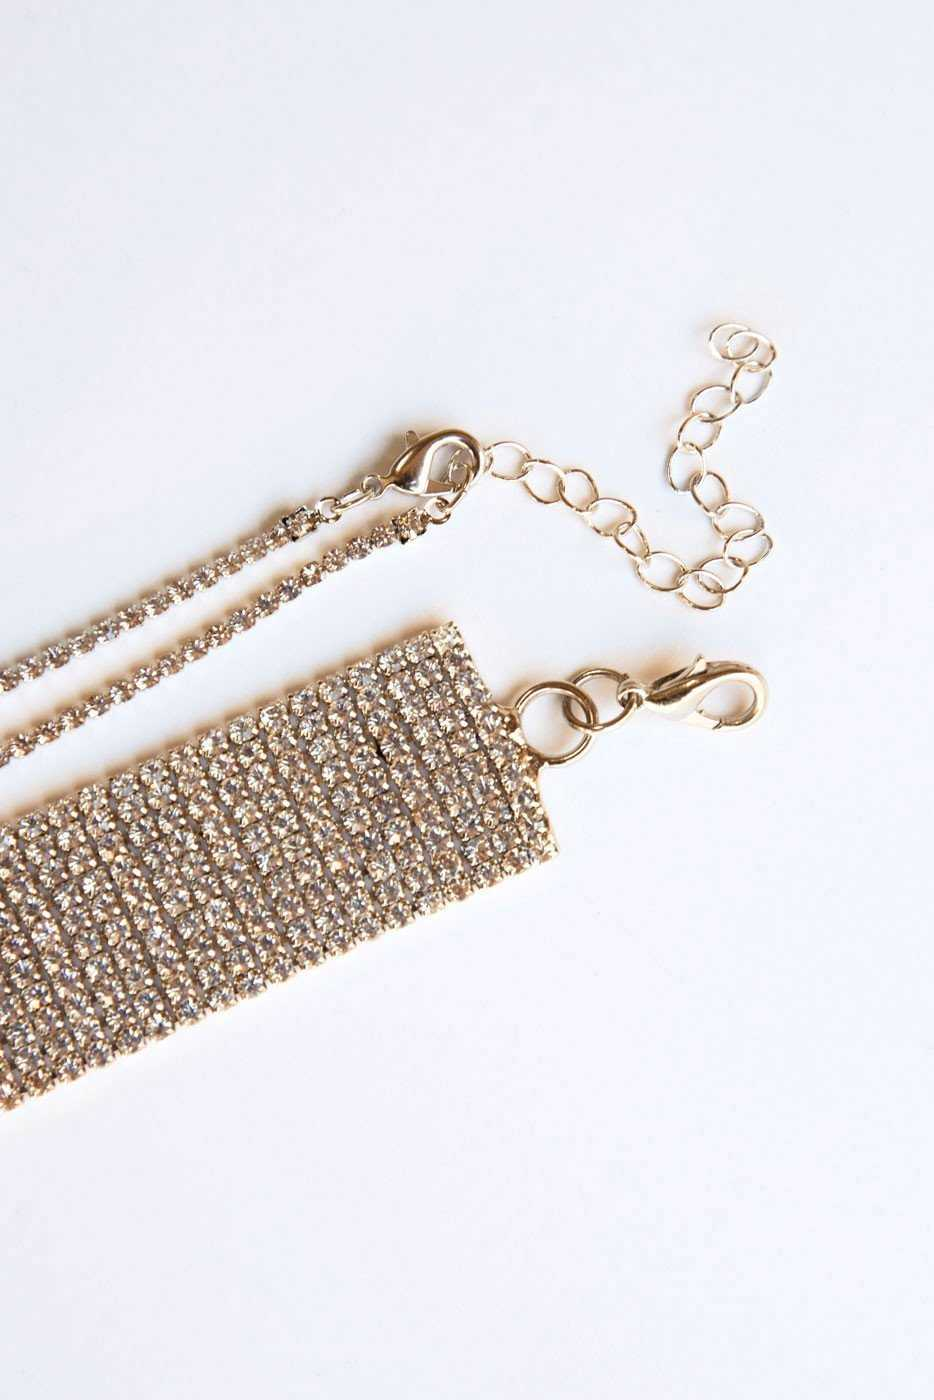 Jewelry - Rise And Shine Choker Set - Gold